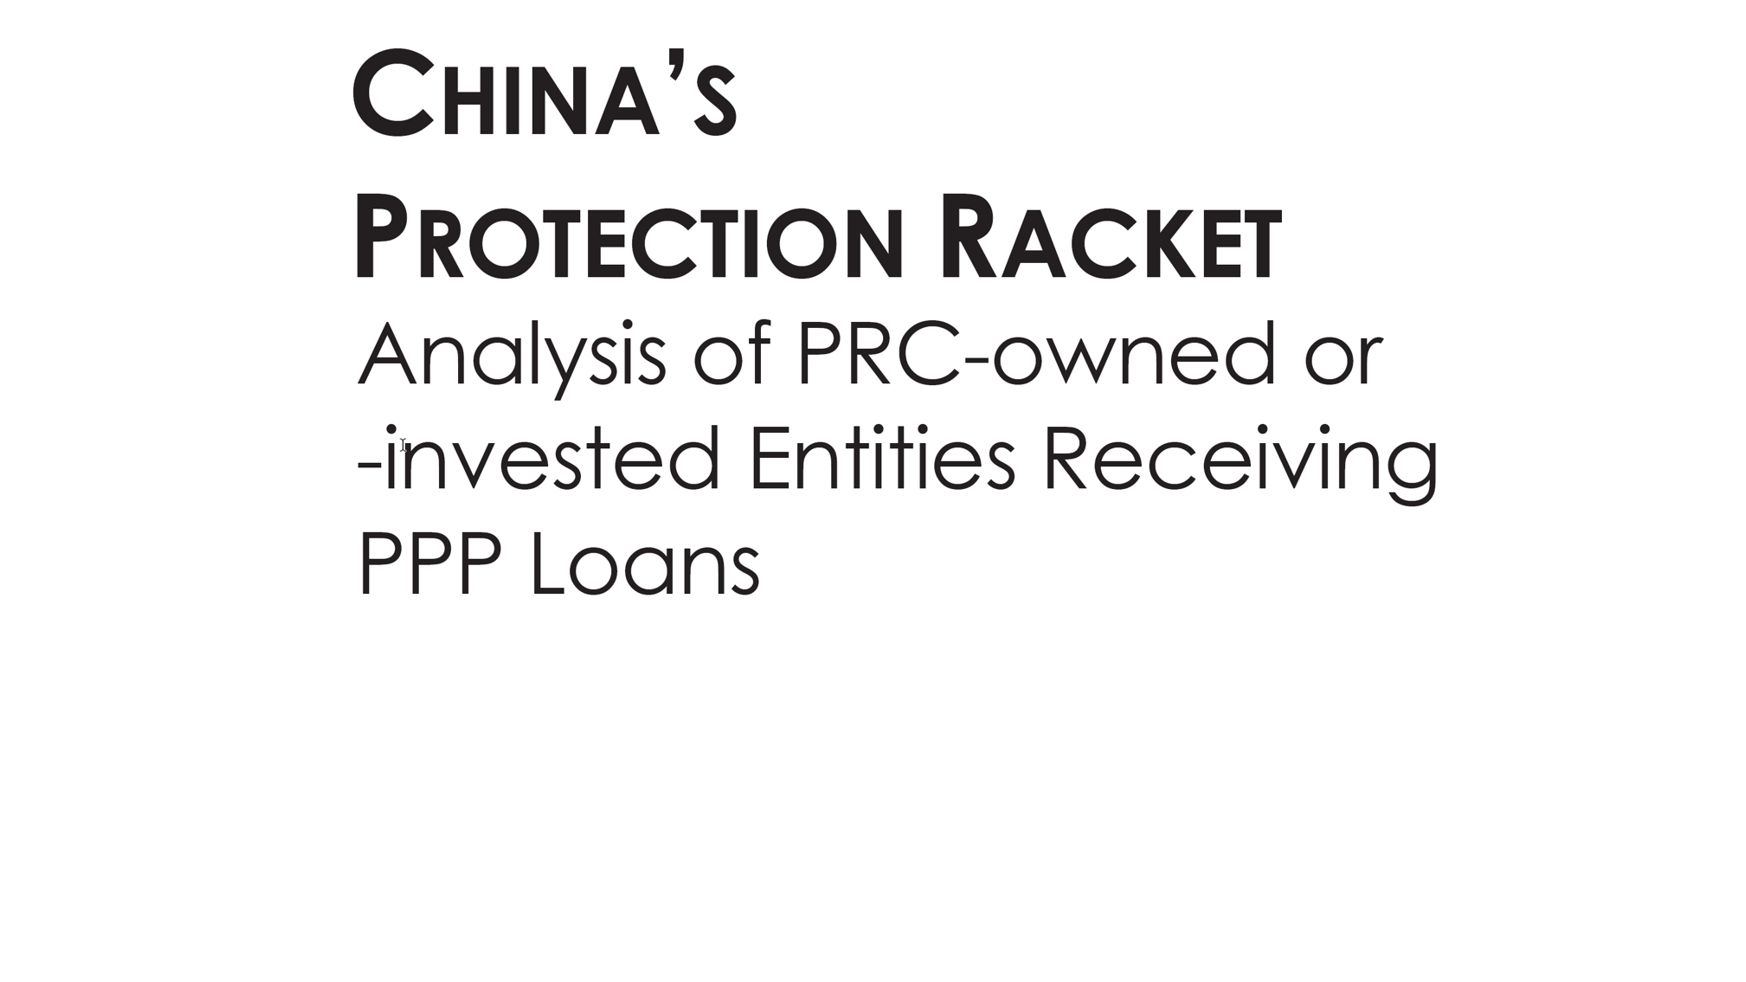 China's Protection Racket Report